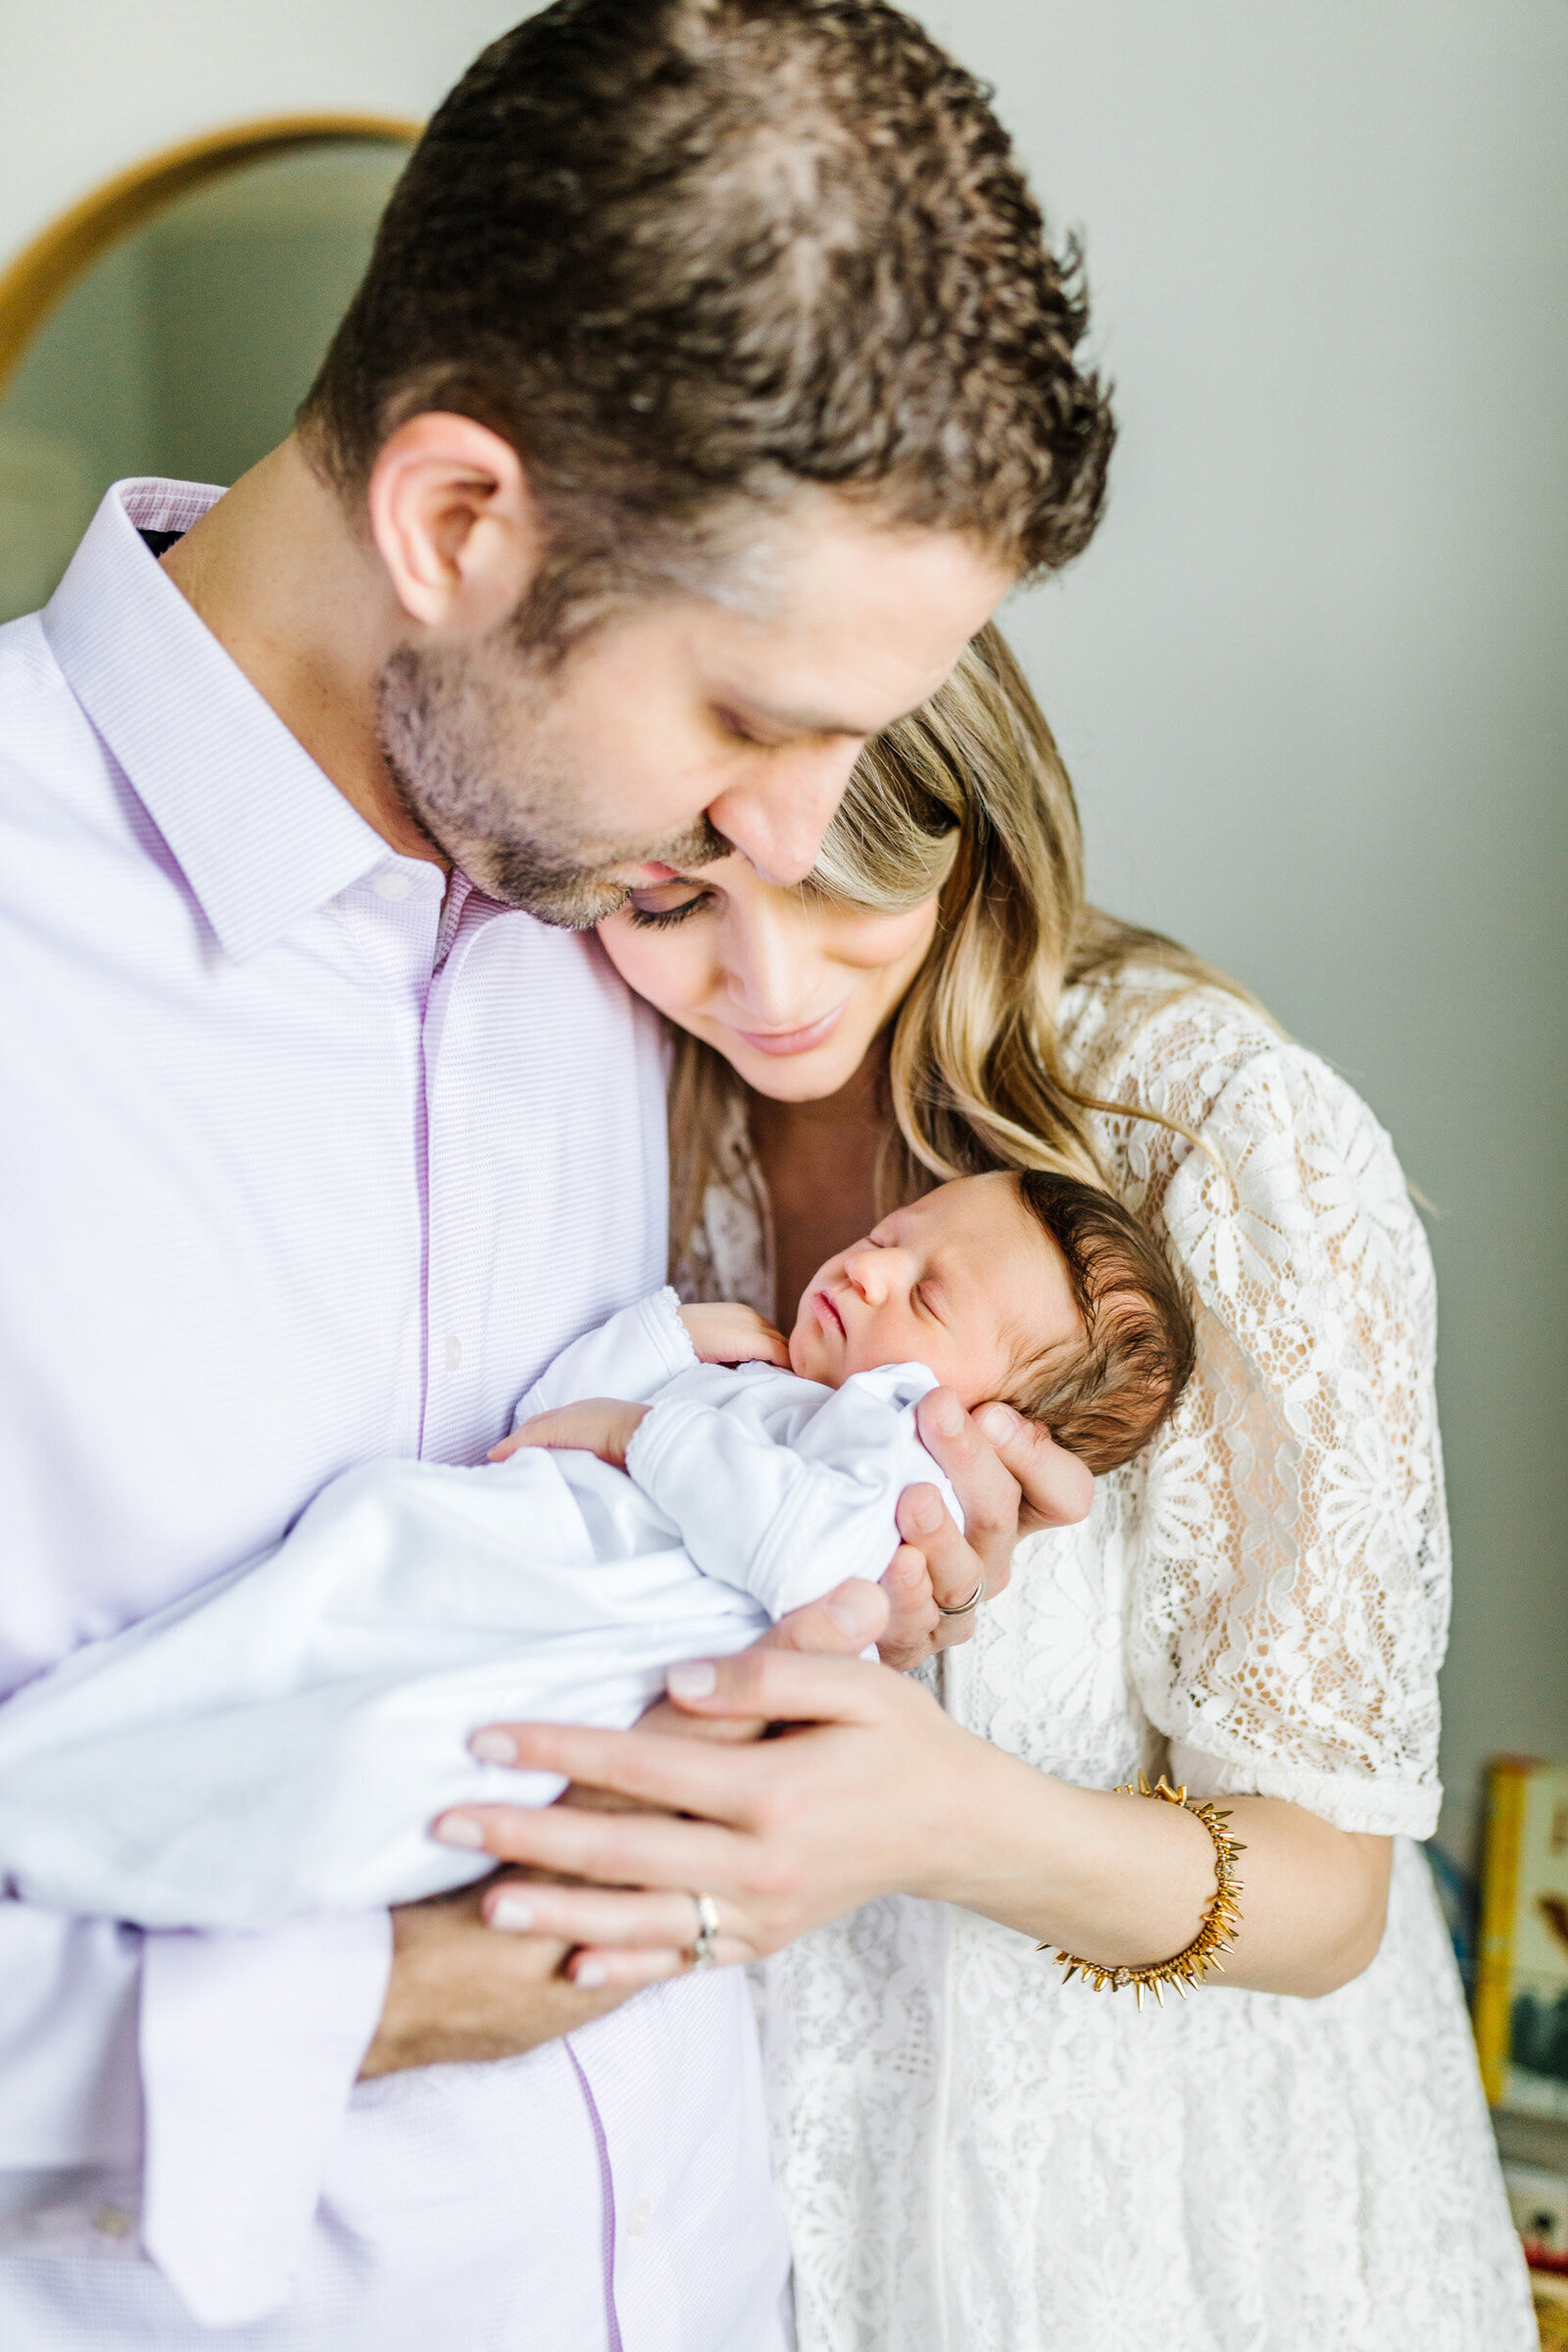 newborn photographer raleigh nc-202020